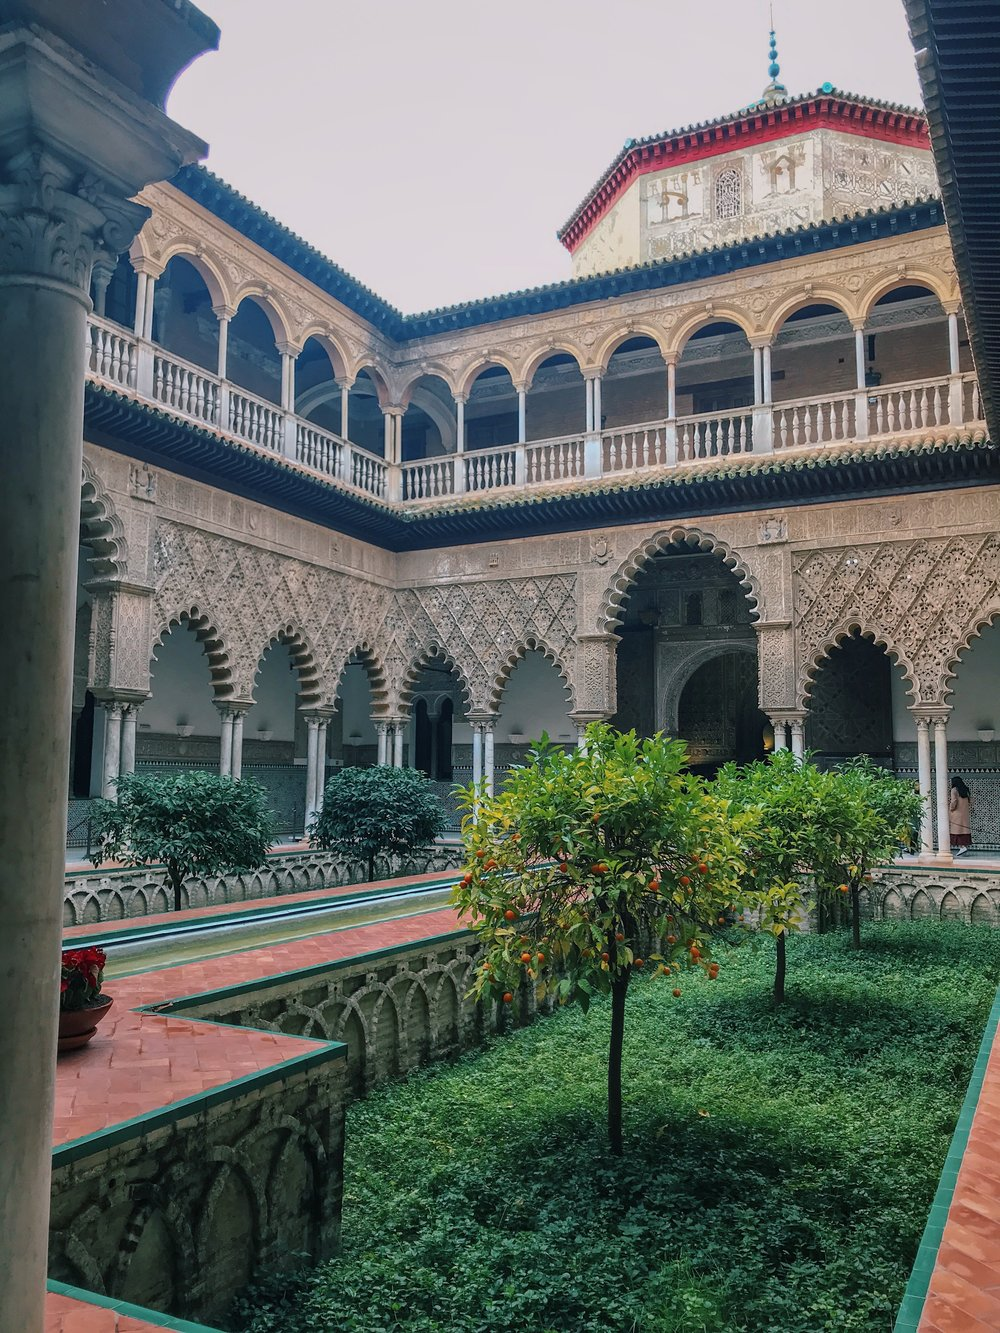 One of the courtyards in Real Alcázar.